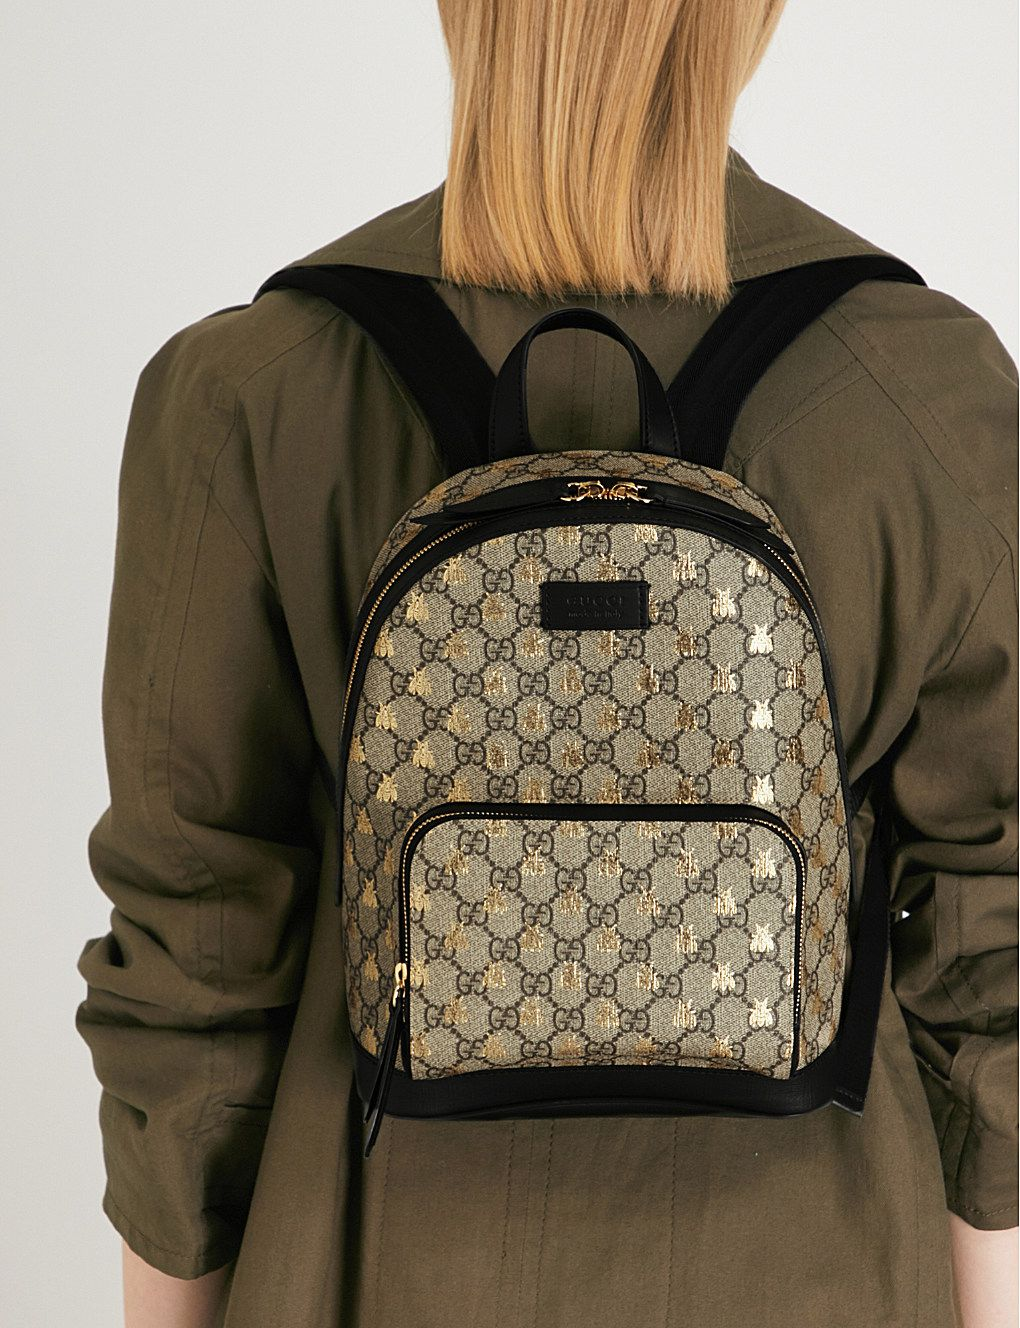 80a38577b24a GUCCI Bee GG Supreme backpack in 2019 | earthly lovely things ...